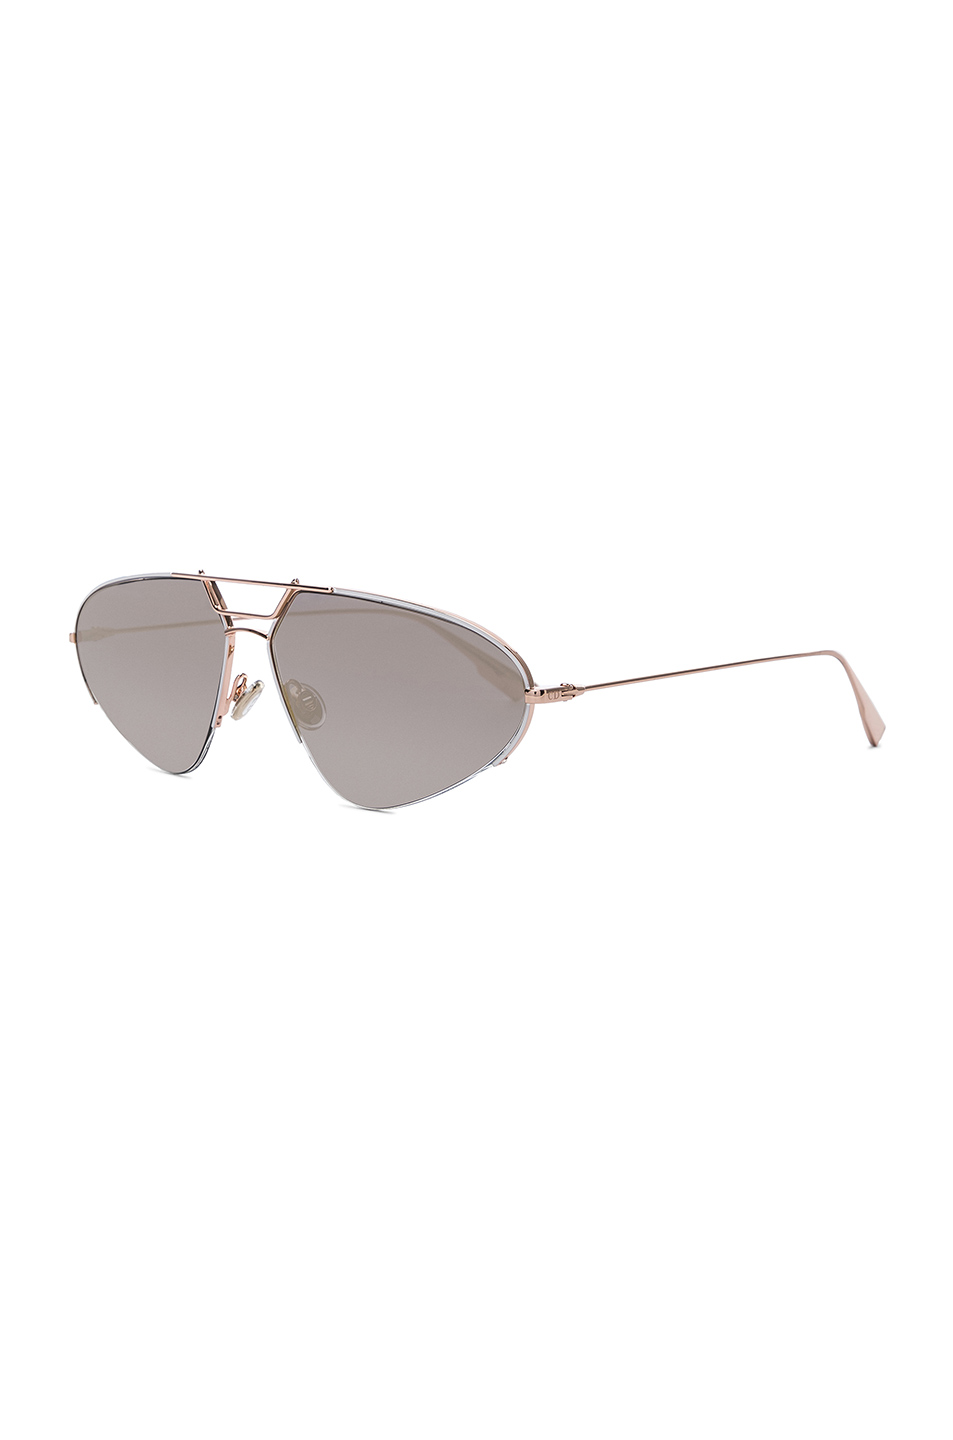 15133a01f776 Buy Original Dior Stellaire 5 Sunglasses at Indonesia